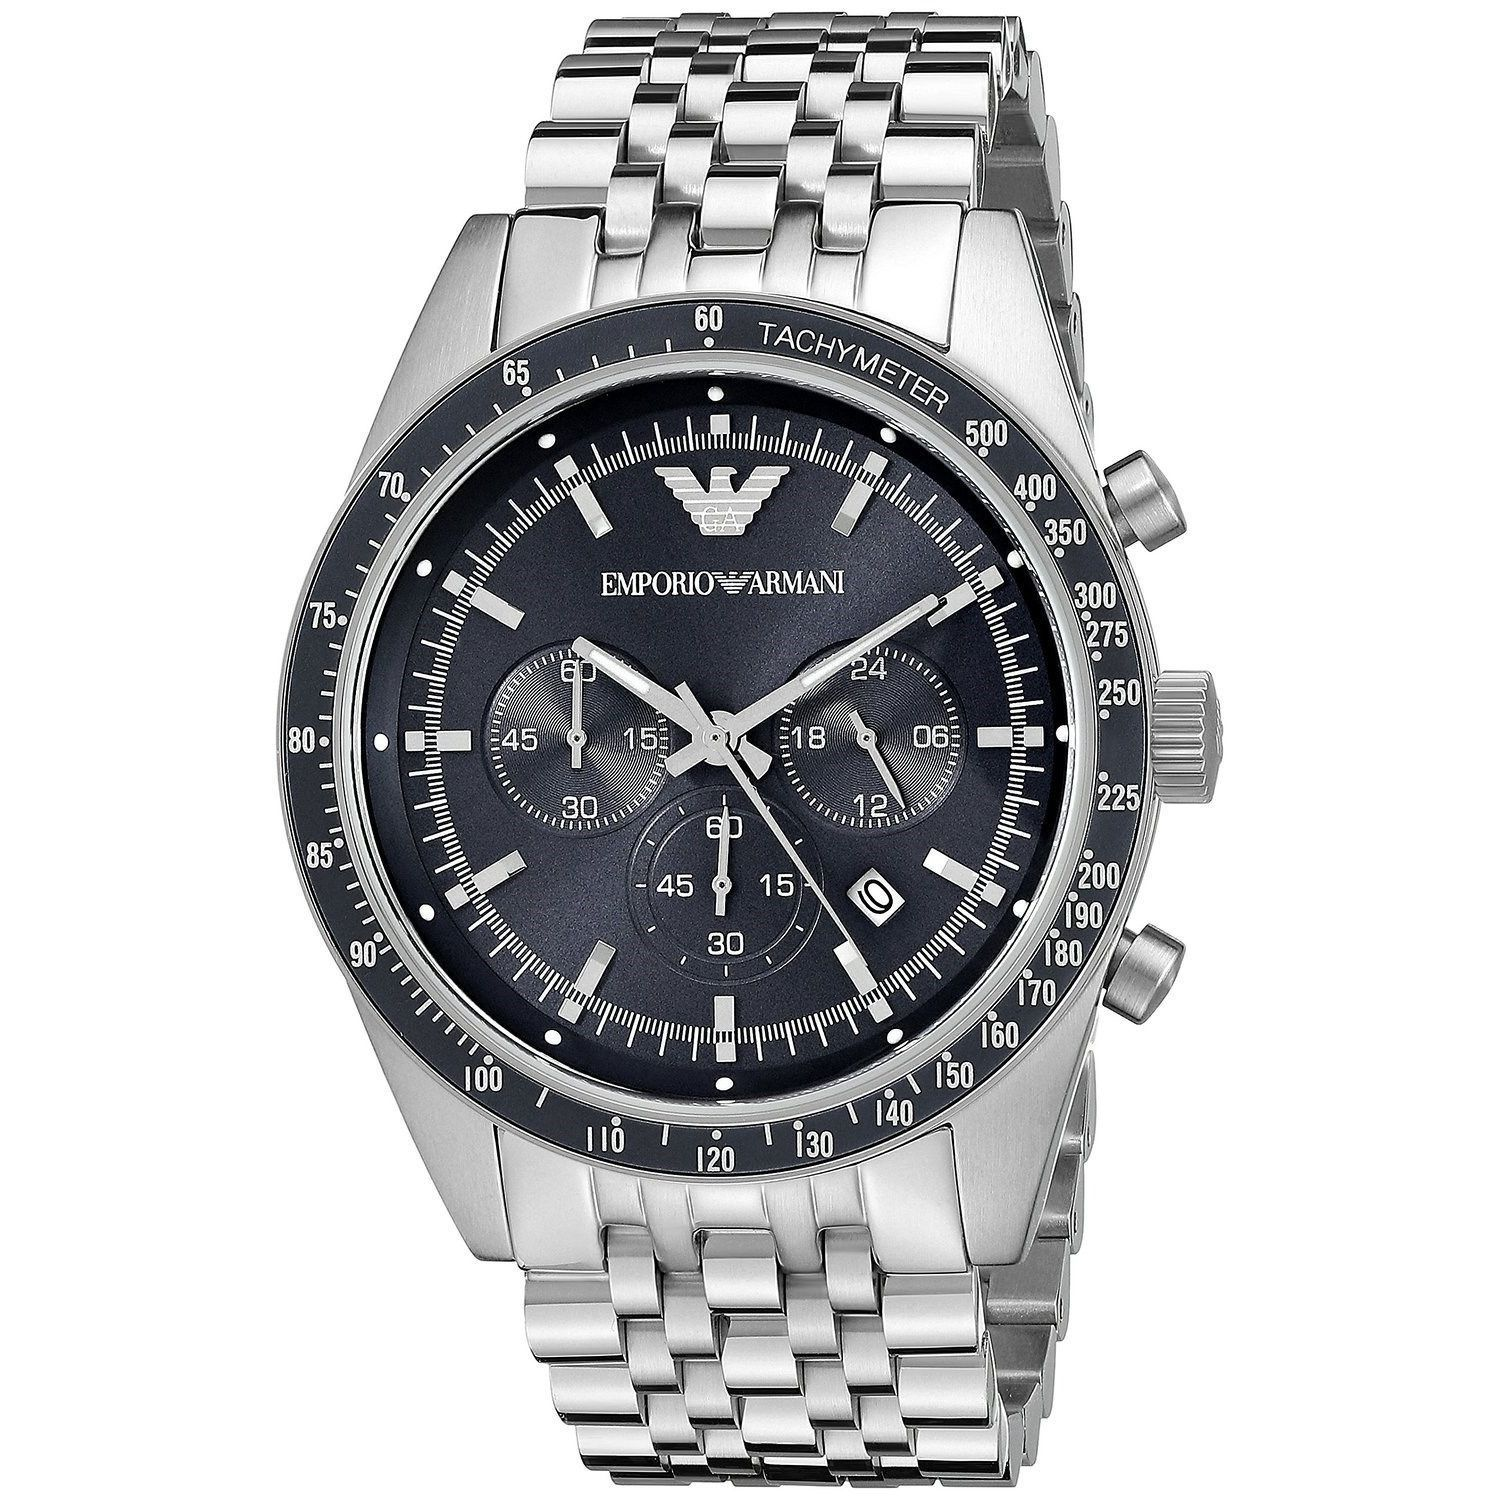 2623d3f74e Shop Emporio Armani Men s AR6072  Sportivo  Chronograph Stainless Steel  Watch - Free Shipping Today - Overstock - 10701392